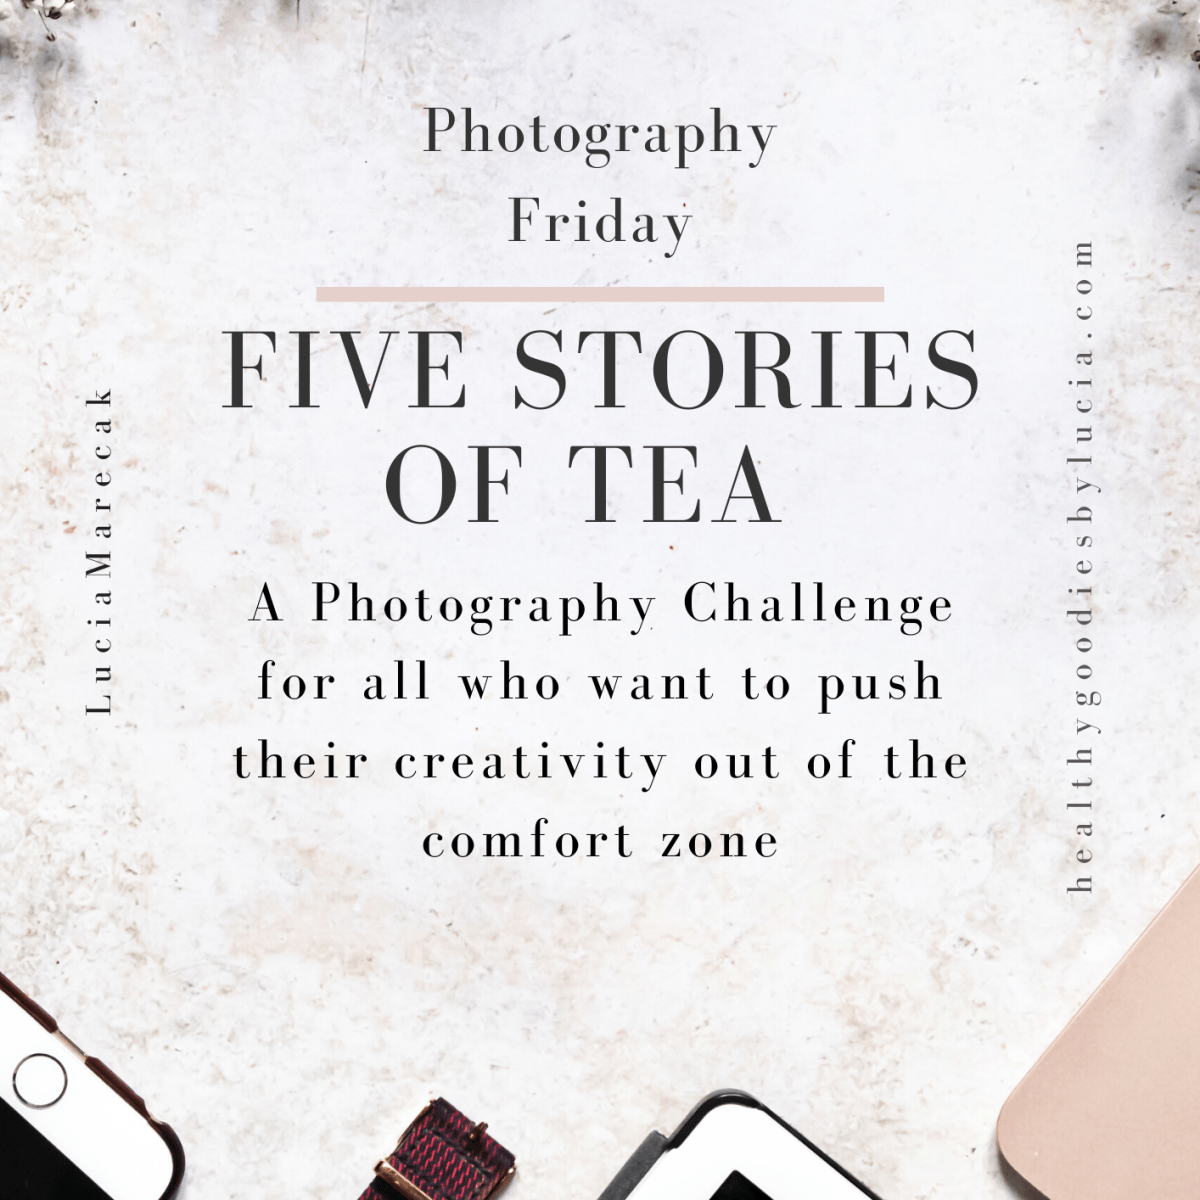 Photography Friday Challenge | Healthy Goodies by Lucia Marecak